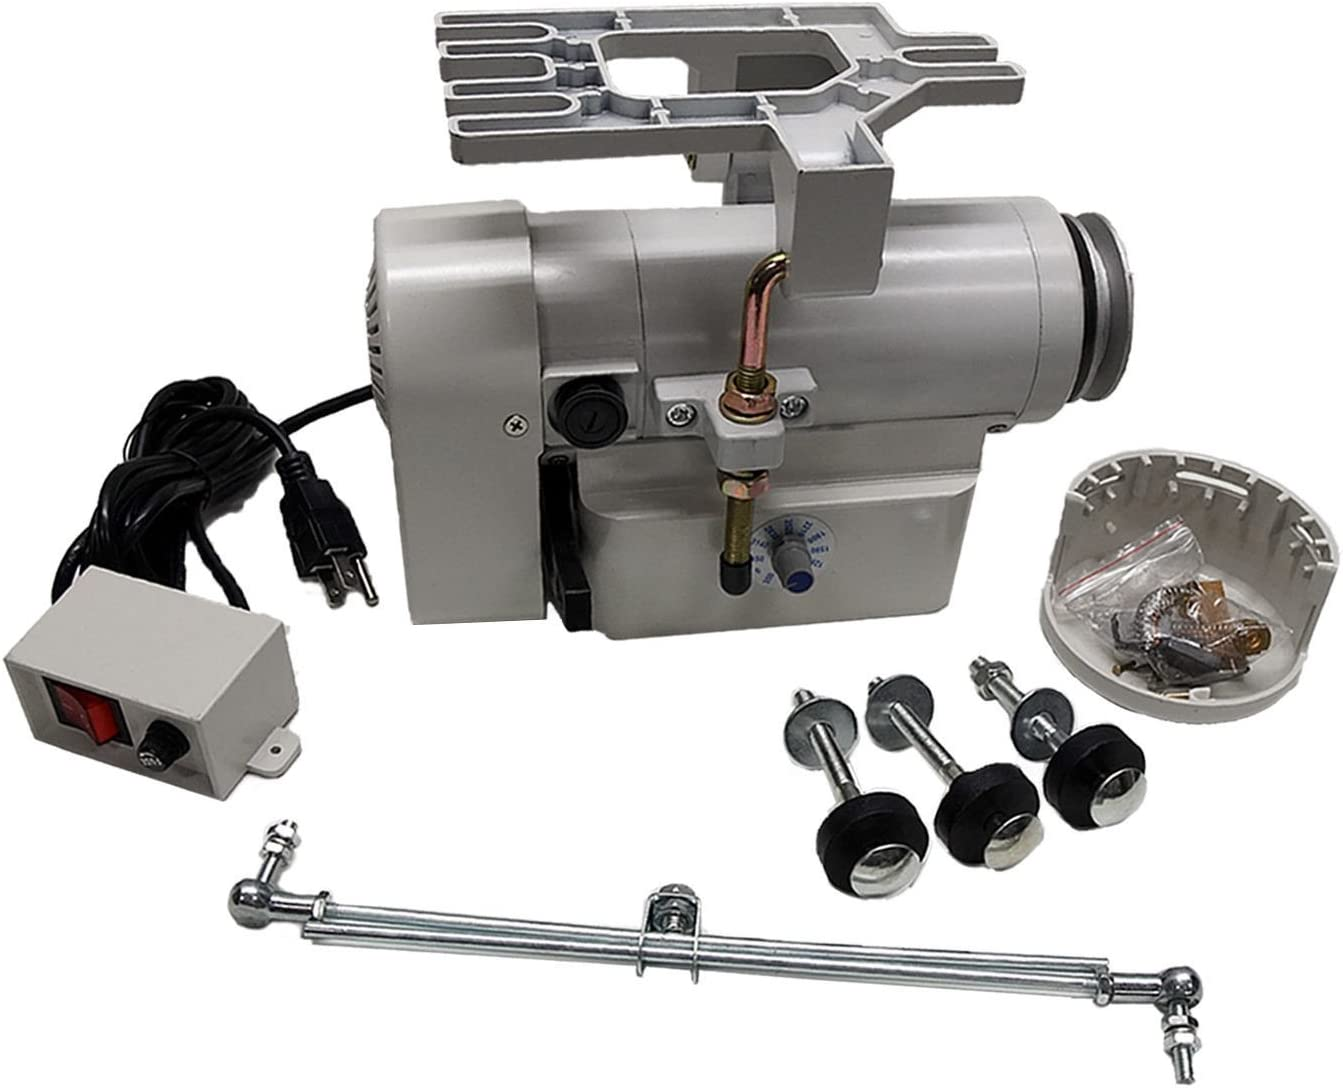 Consew CSM550-1 Sewing Machine Servo 3450RPM Motor Volt 110 We OFFer at cheap prices Q Jacksonville Mall